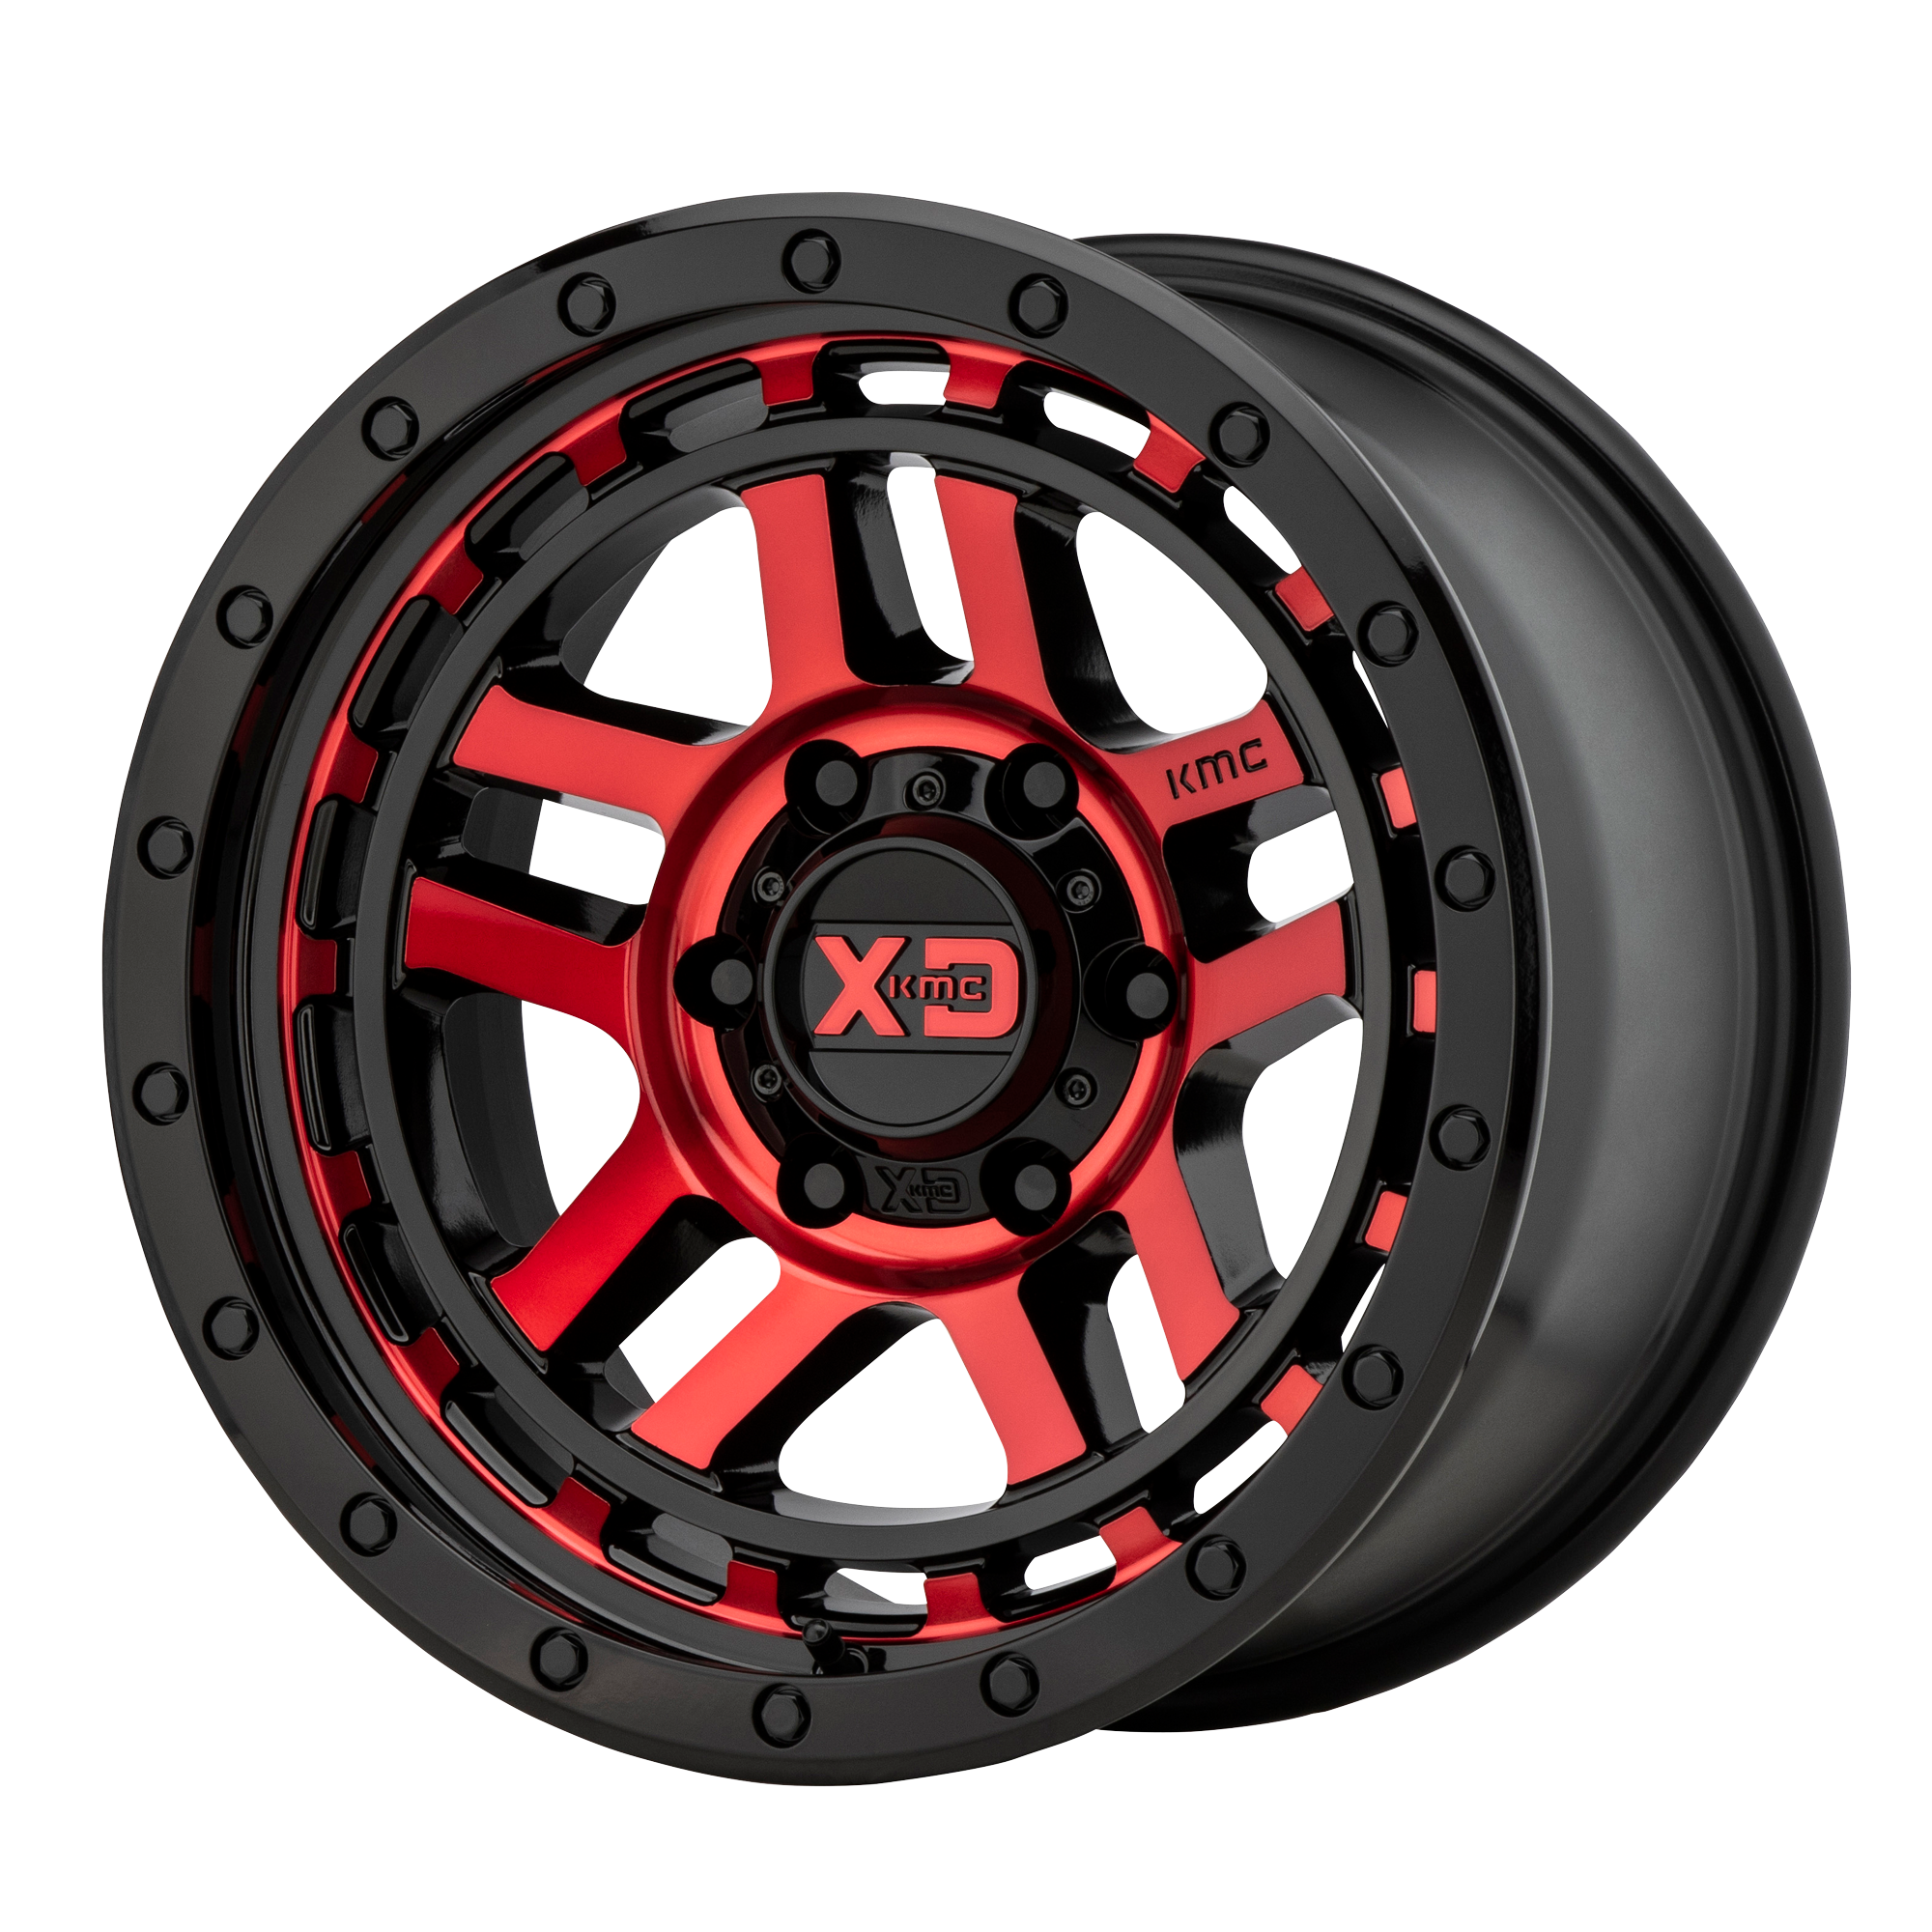 XD SERIES XD140 RECON hliníkové disky 9x17 5x127 ET-12 Gloss Black Machined With Red Tint